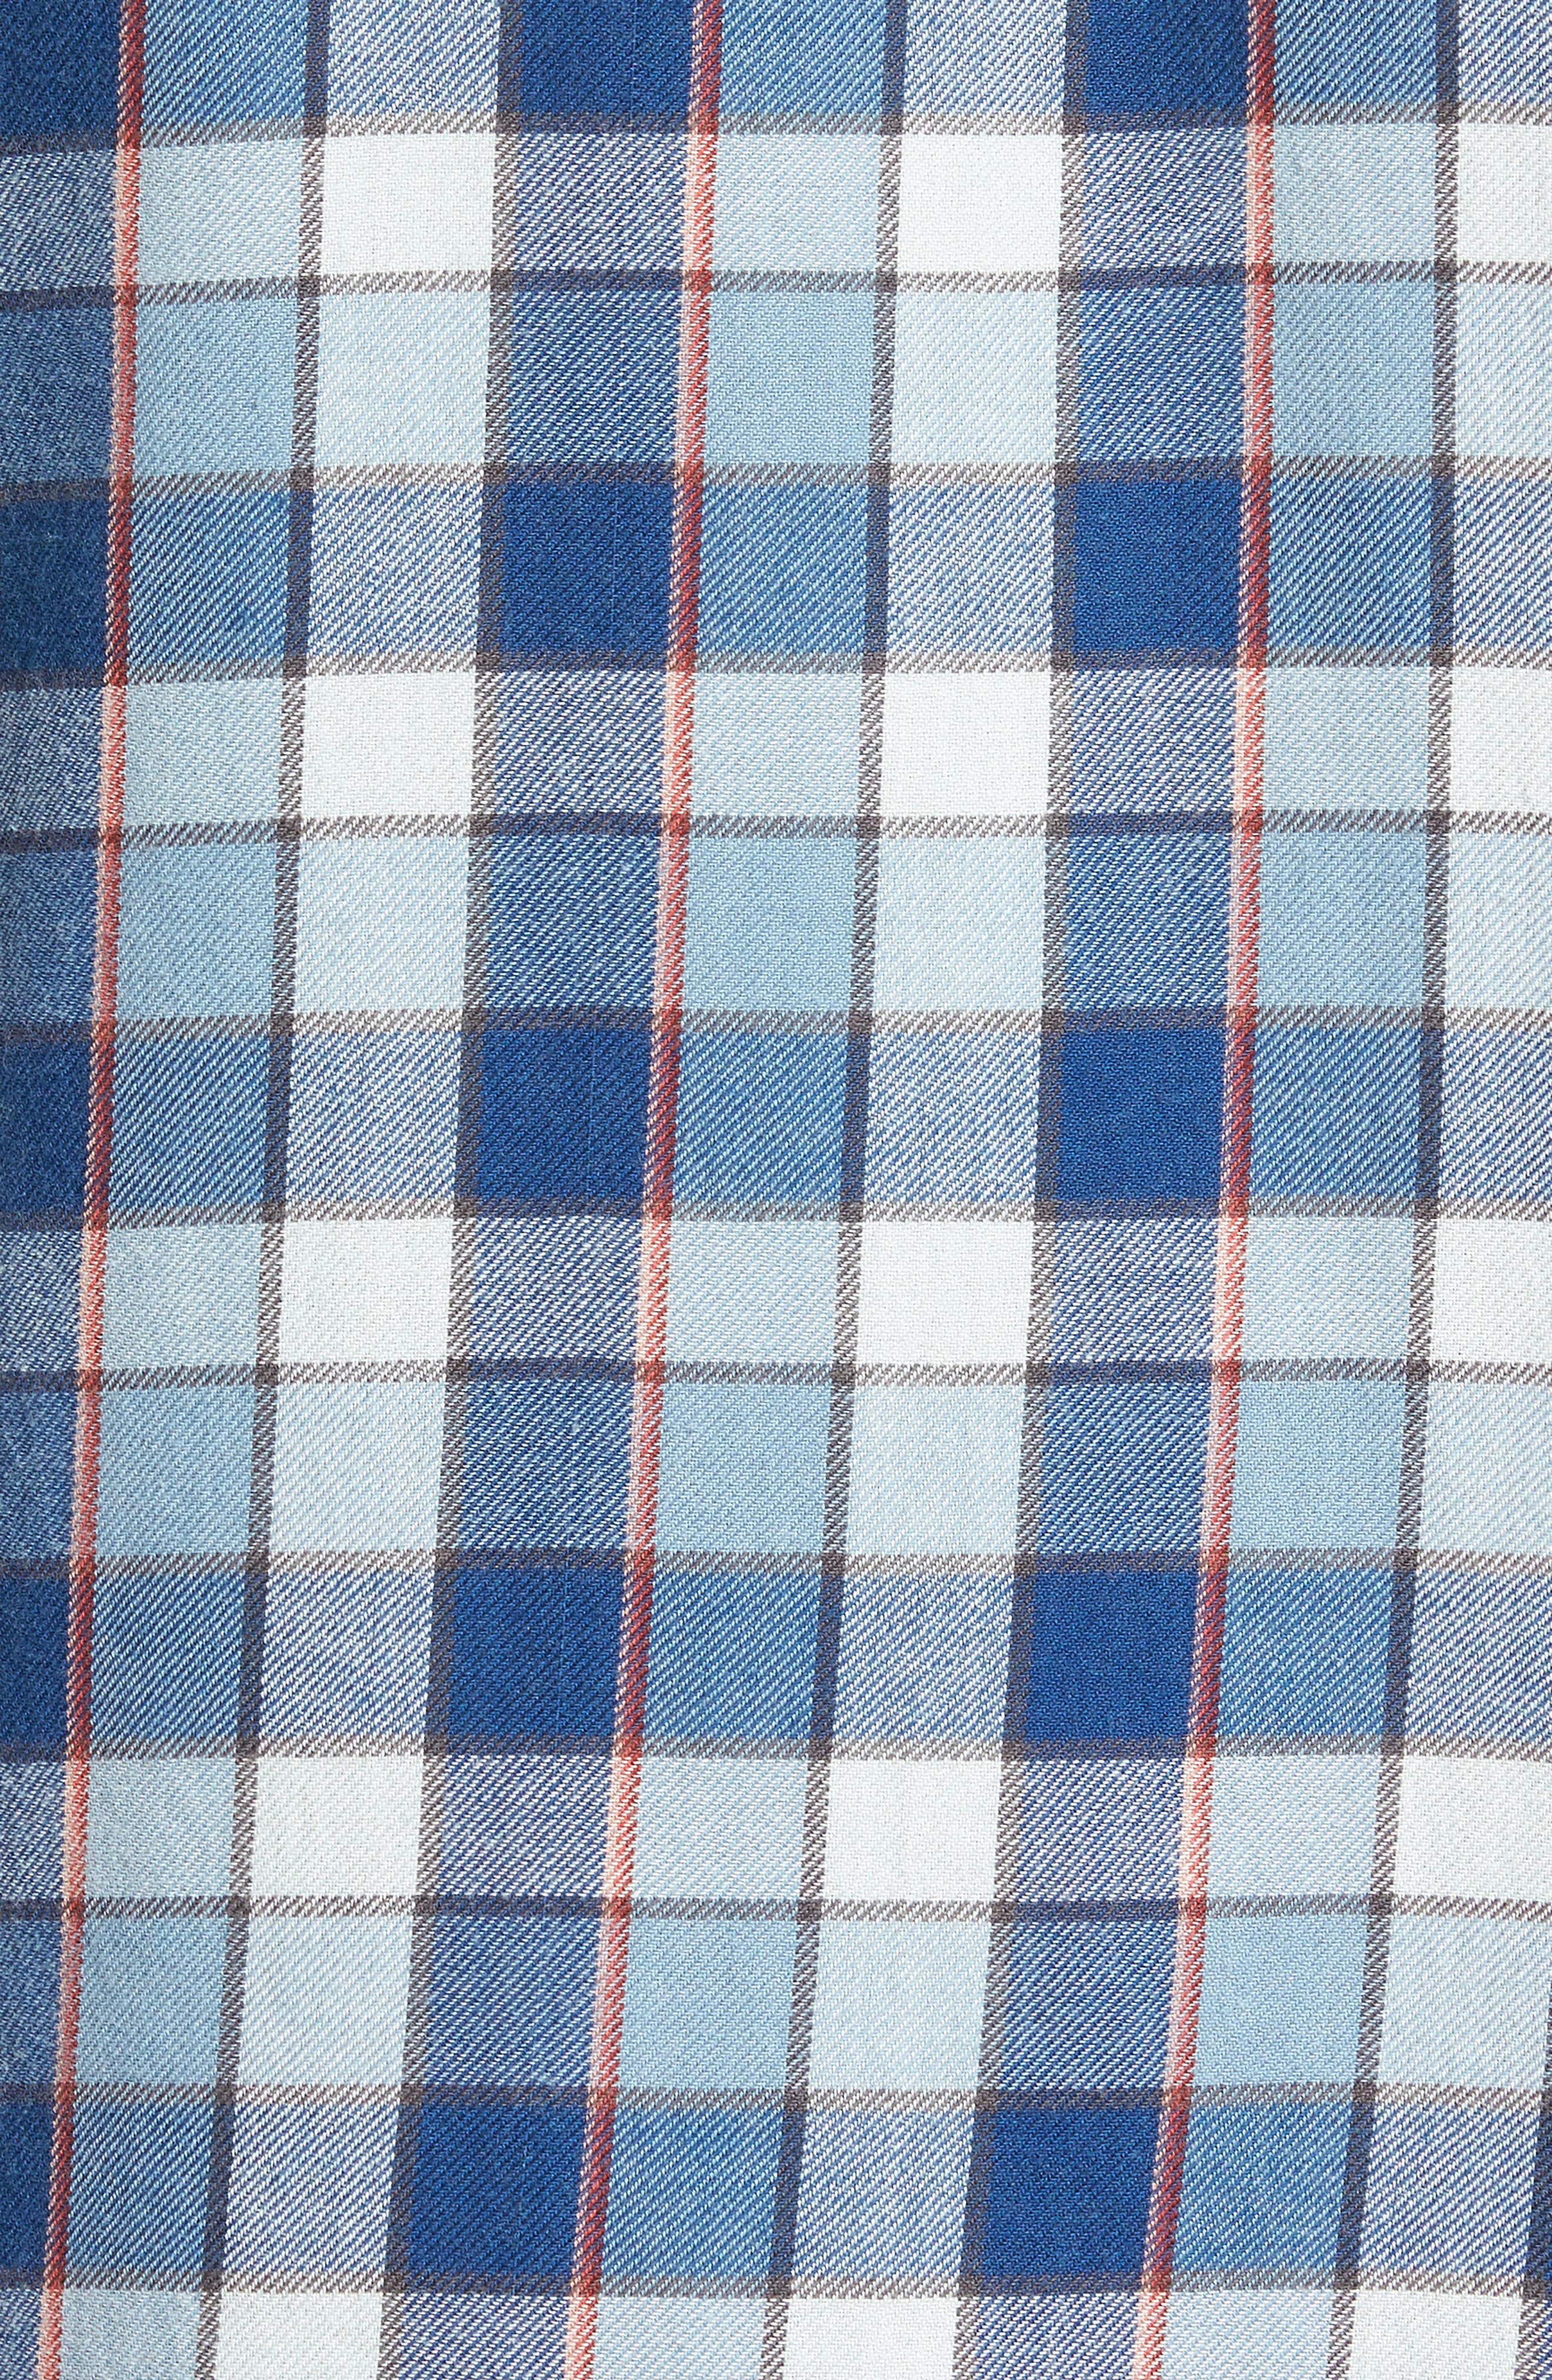 Bilabong Freemont Flannel Shirt,                             Alternate thumbnail 5, color,                             428